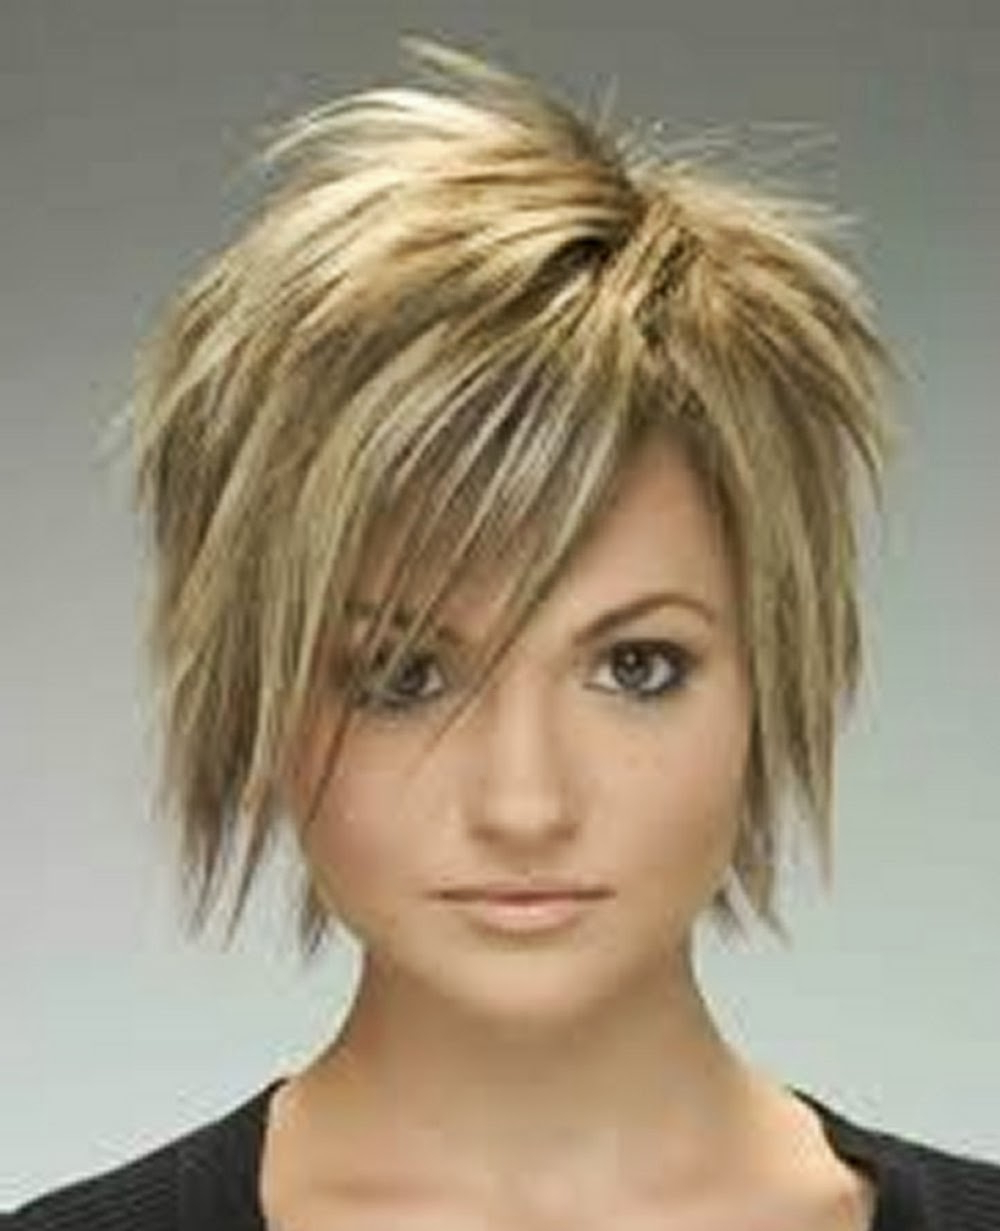 25 Fantastic Short Haircut Inspirations For 2015 – Tipsaholic Throughout Short Bob Hairstyles With Long Edgy Layers (View 14 of 20)